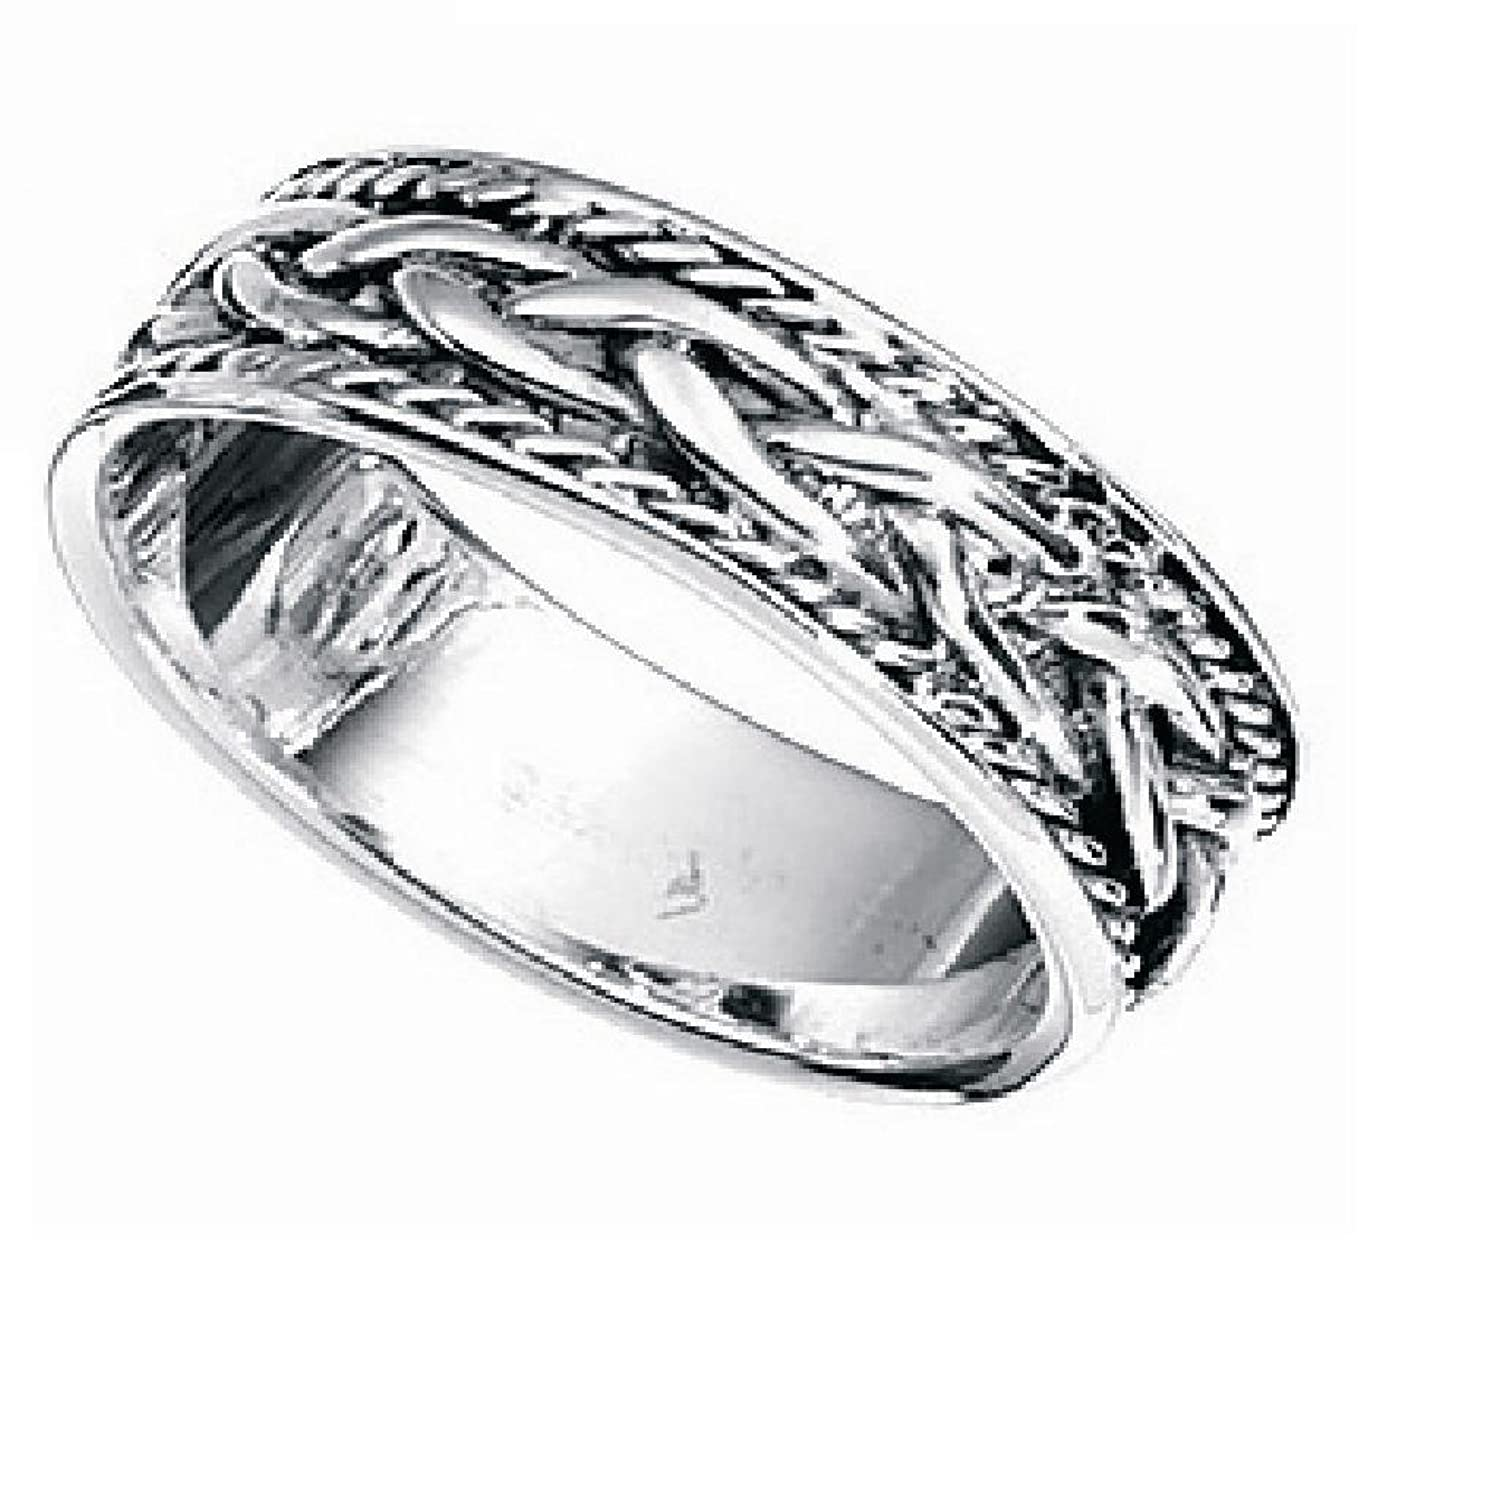 ring mens creative claddagh rings trinity d irish wedding gifts jewelry celtic